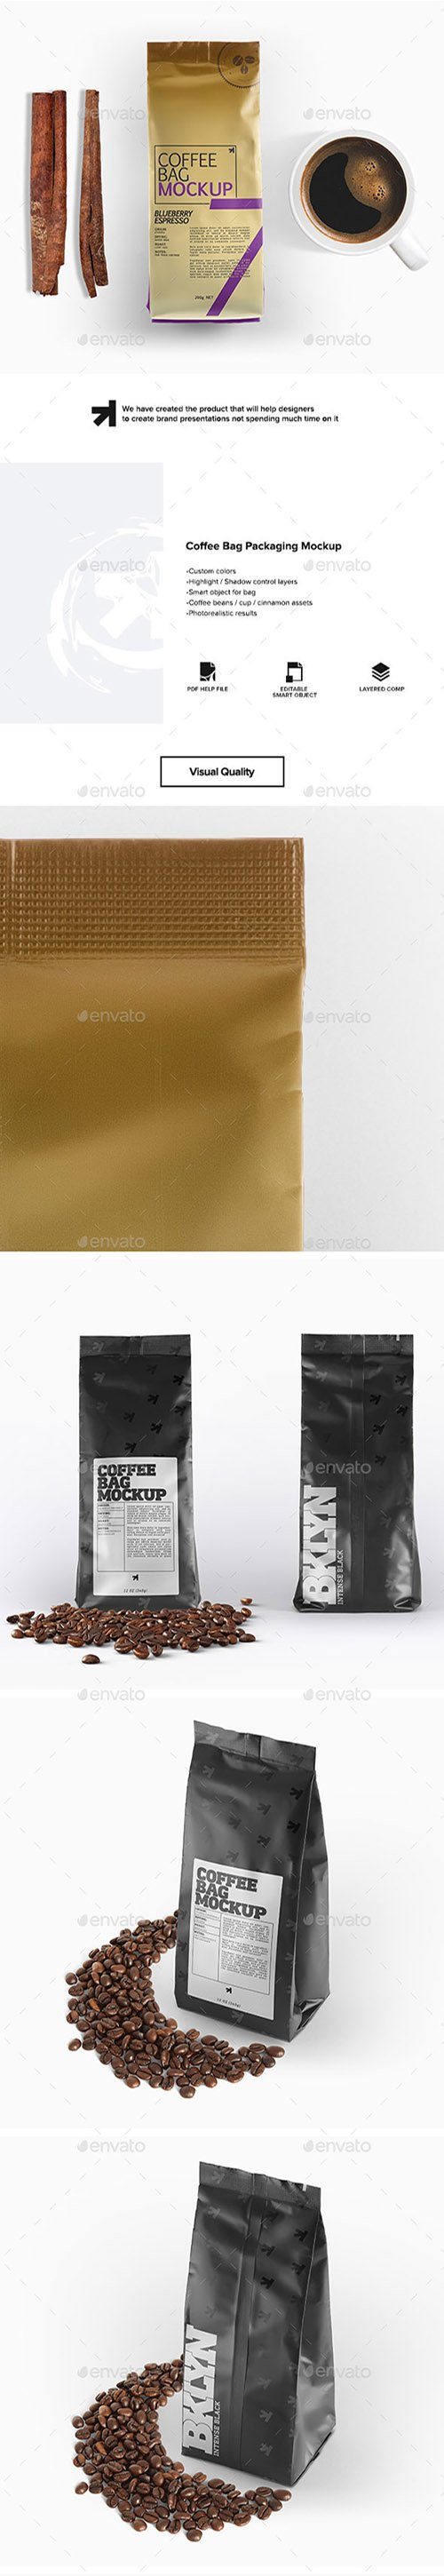 GR - Coffee Bag Packaging Mockup 22500433